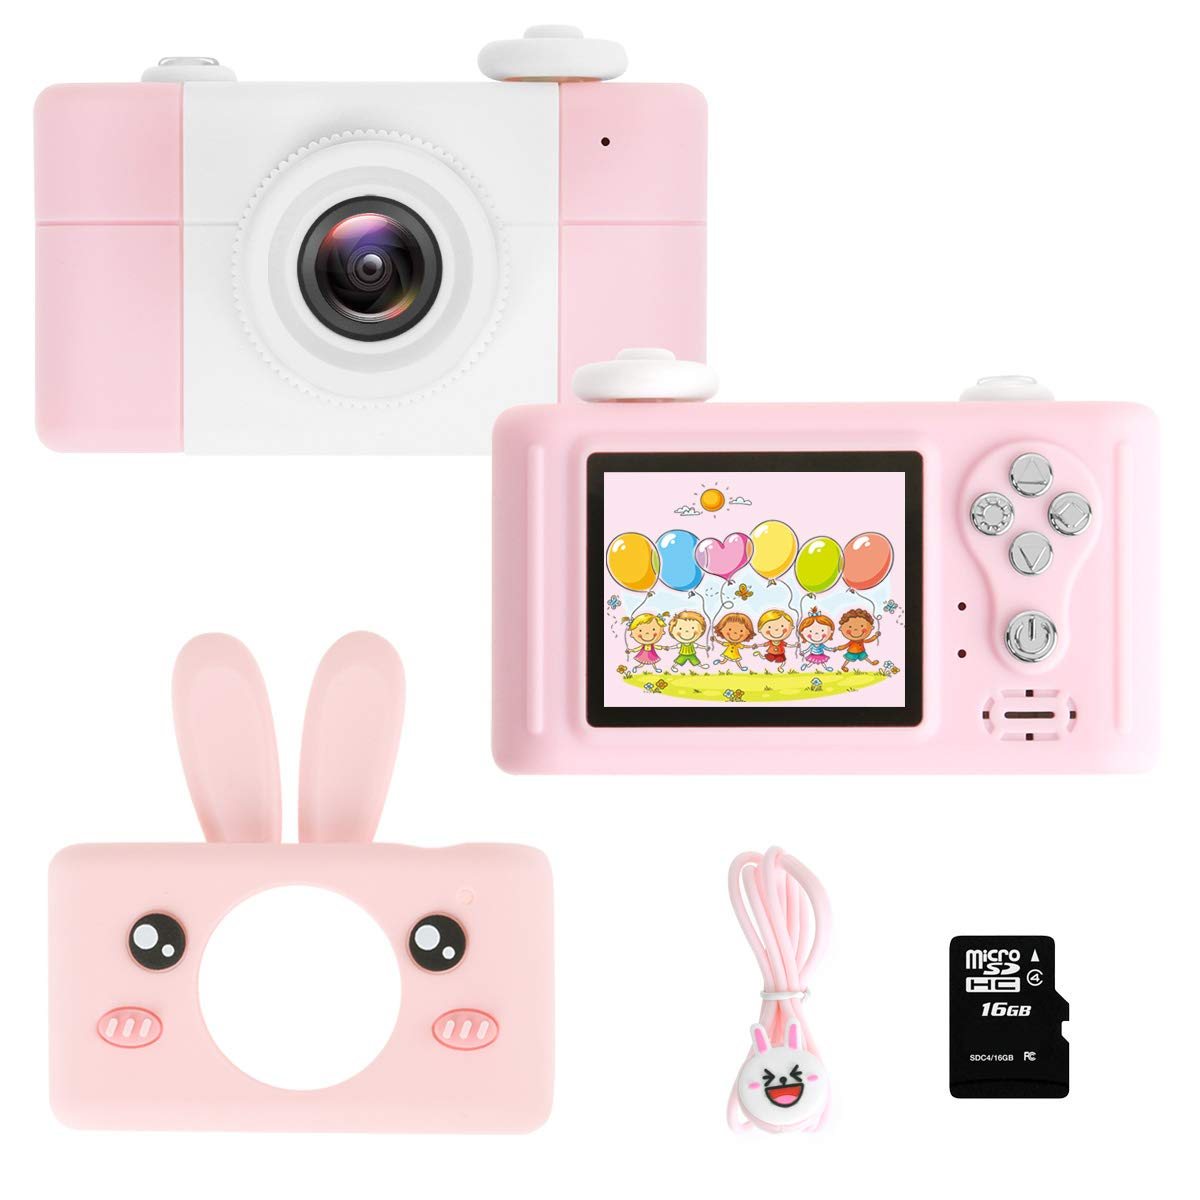 GZMWON Gift Kids Camera, Digital Video Camera for Children's Cartoon Toy Camera 8.0MP 2 Inch HD Screen, Shockproof Compact Camera for 3-10 Girls Boys 16GB TF Card-Pink Rabbit